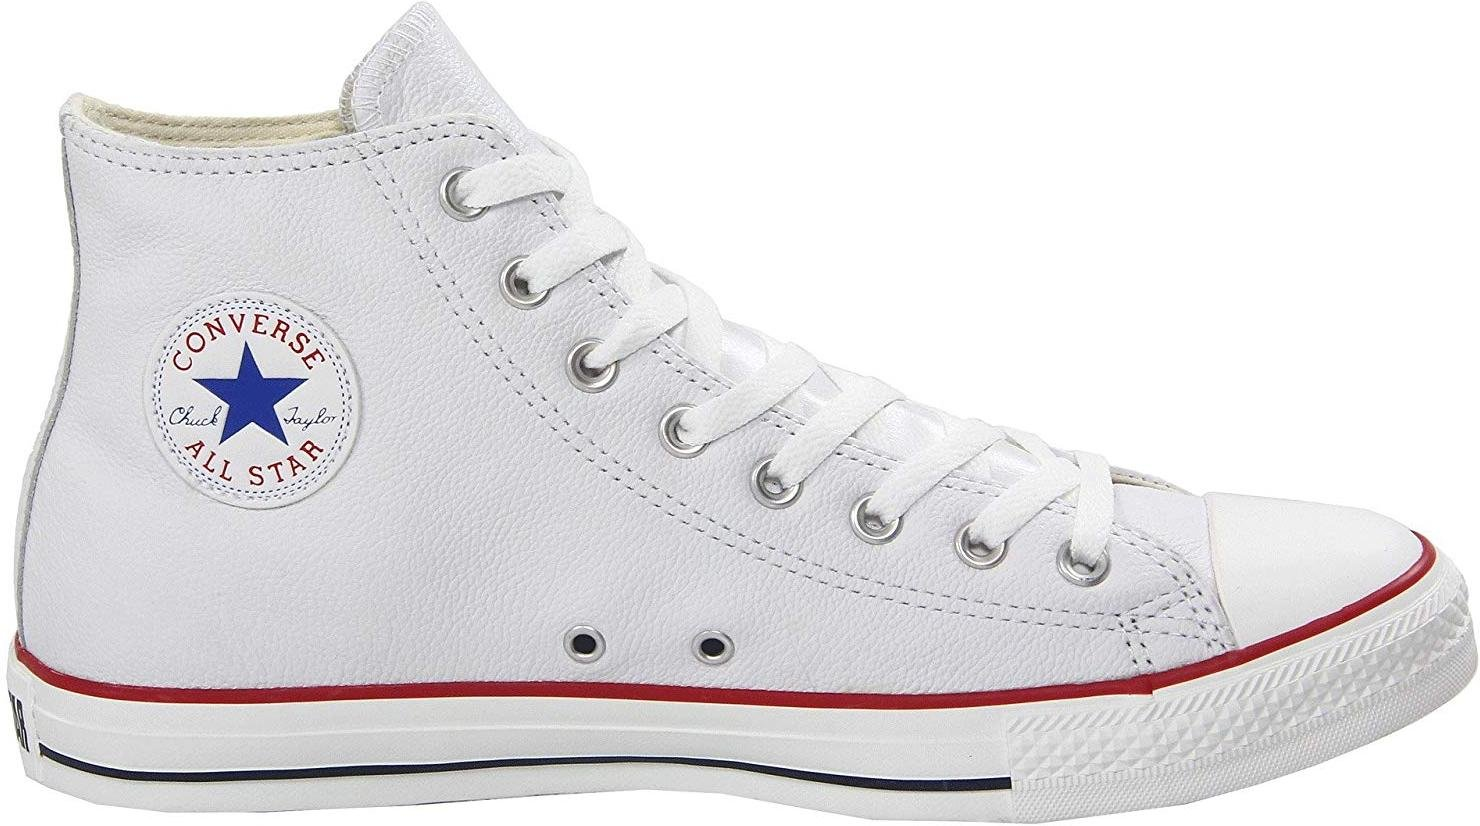 Converse converse chuck taylor as high leather Cipők